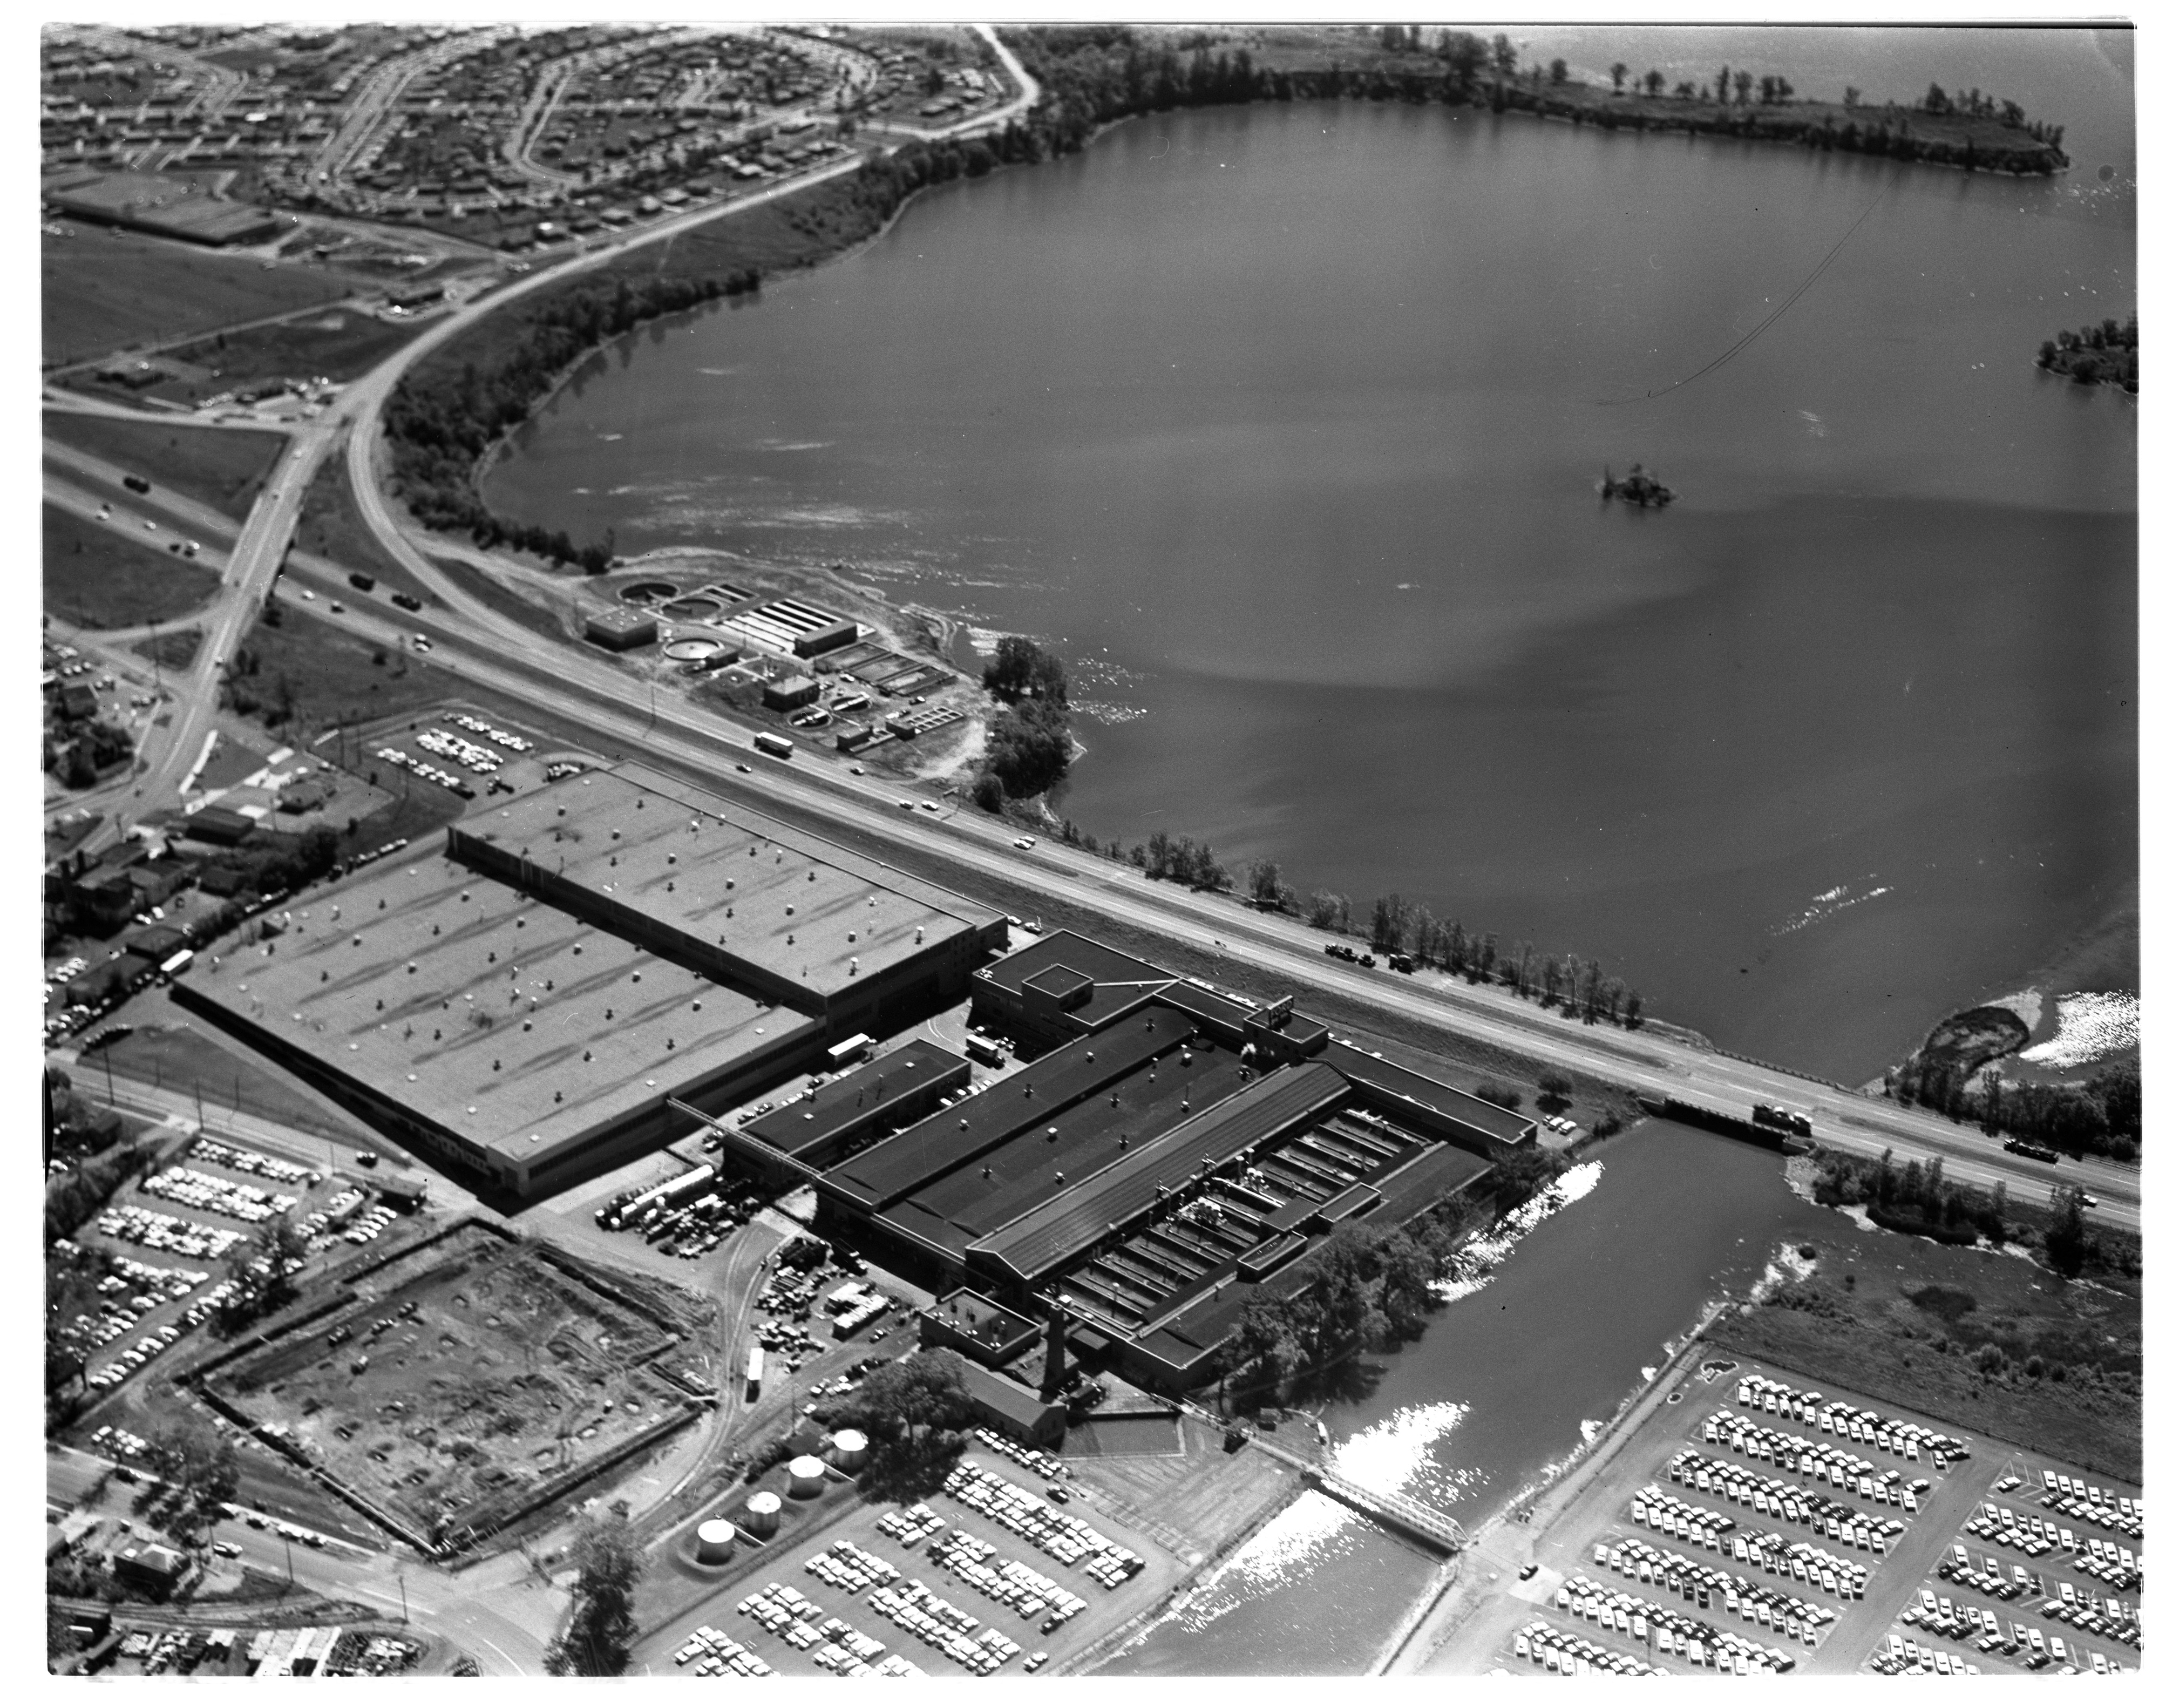 Aerial Photograph of Ford Motor Company's Ypsilanti Plant, September 1963 image